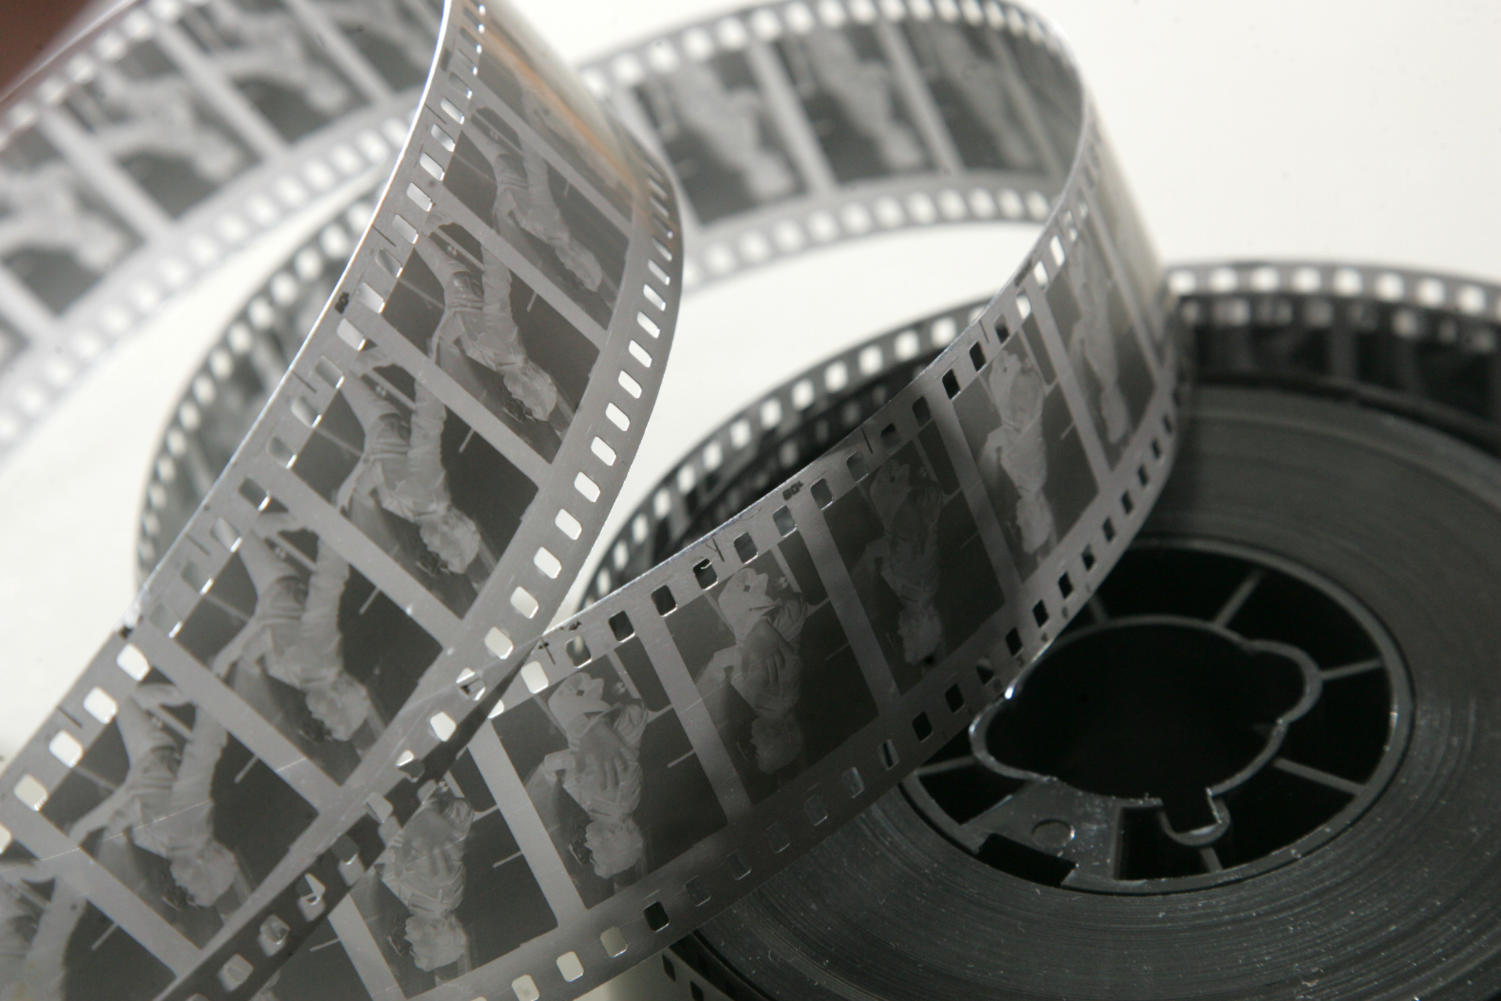 Do you think book to film adaptations do justice?